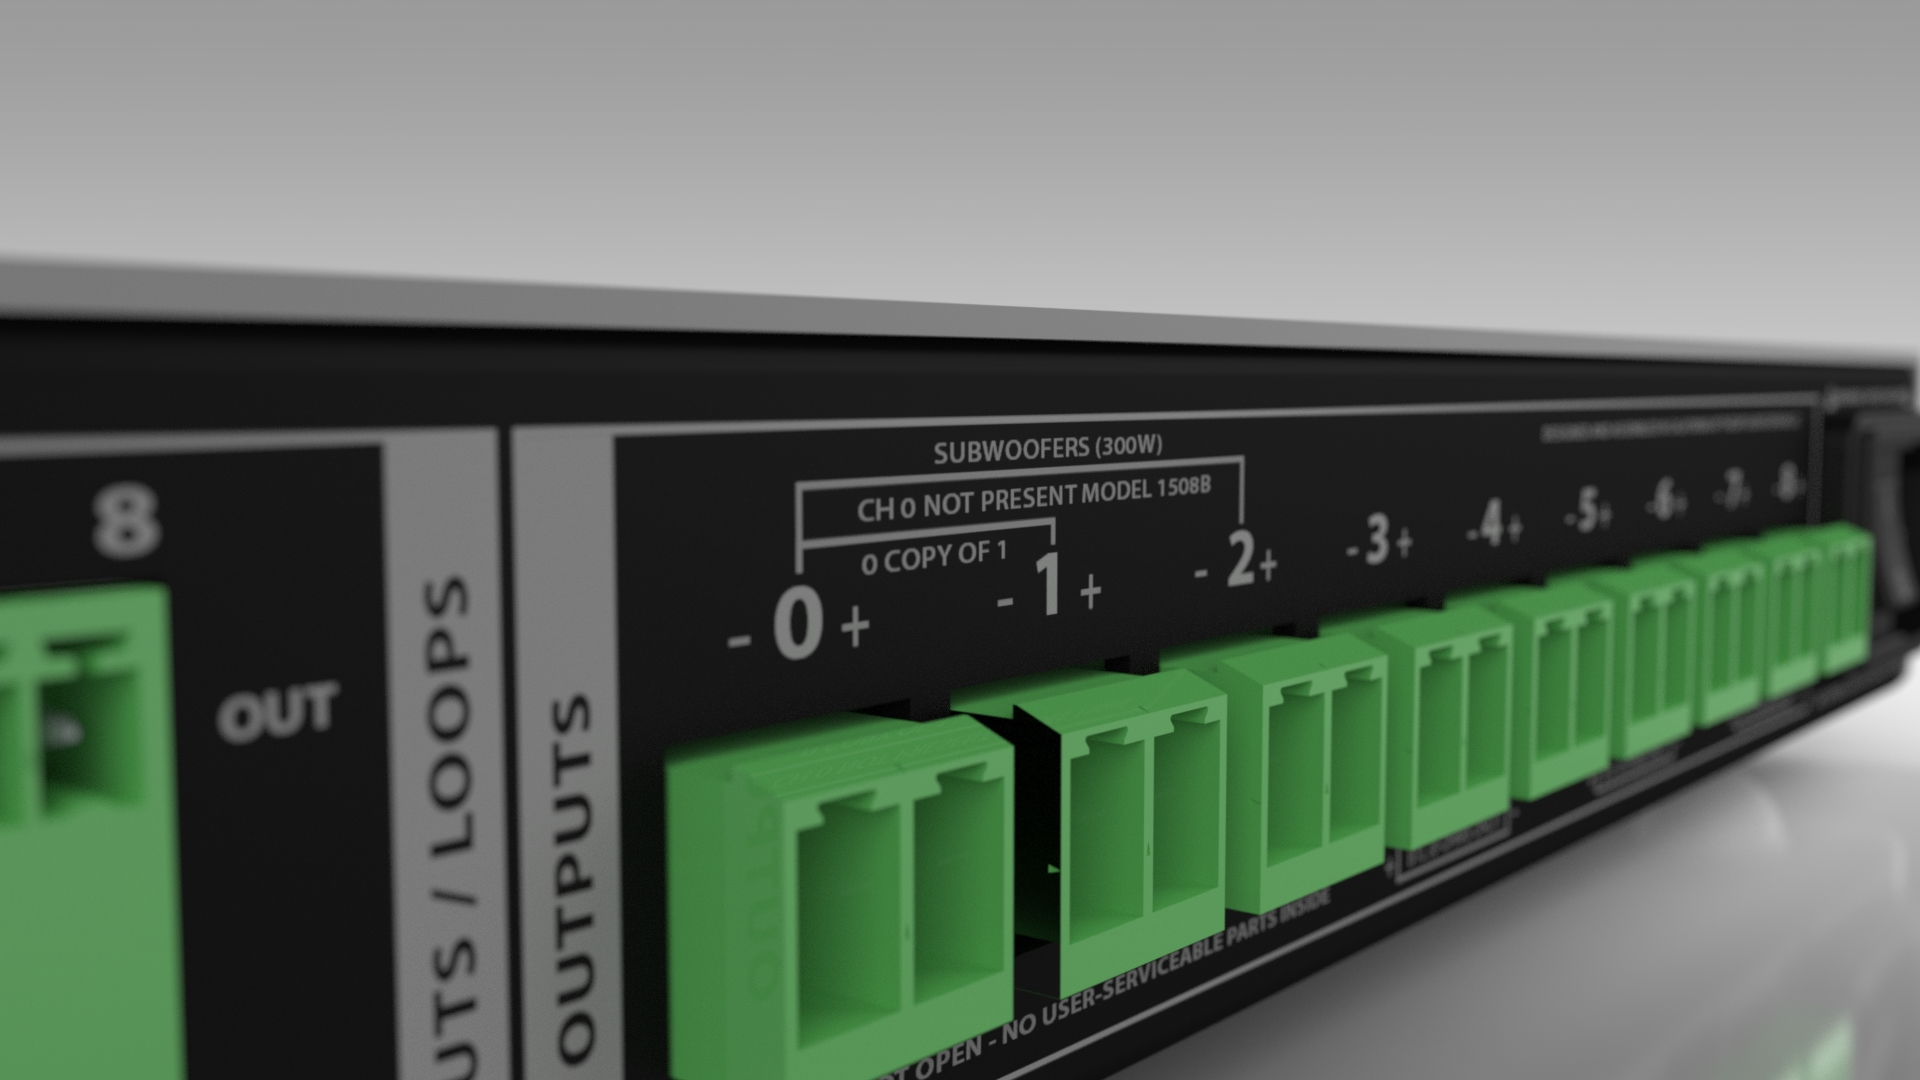 ALC-1809B 9-CHANNEL AMPLIFIED LOUDSPEAKER CONTROLLER - 3 X 300W SUBWOOFER OUTPUTS